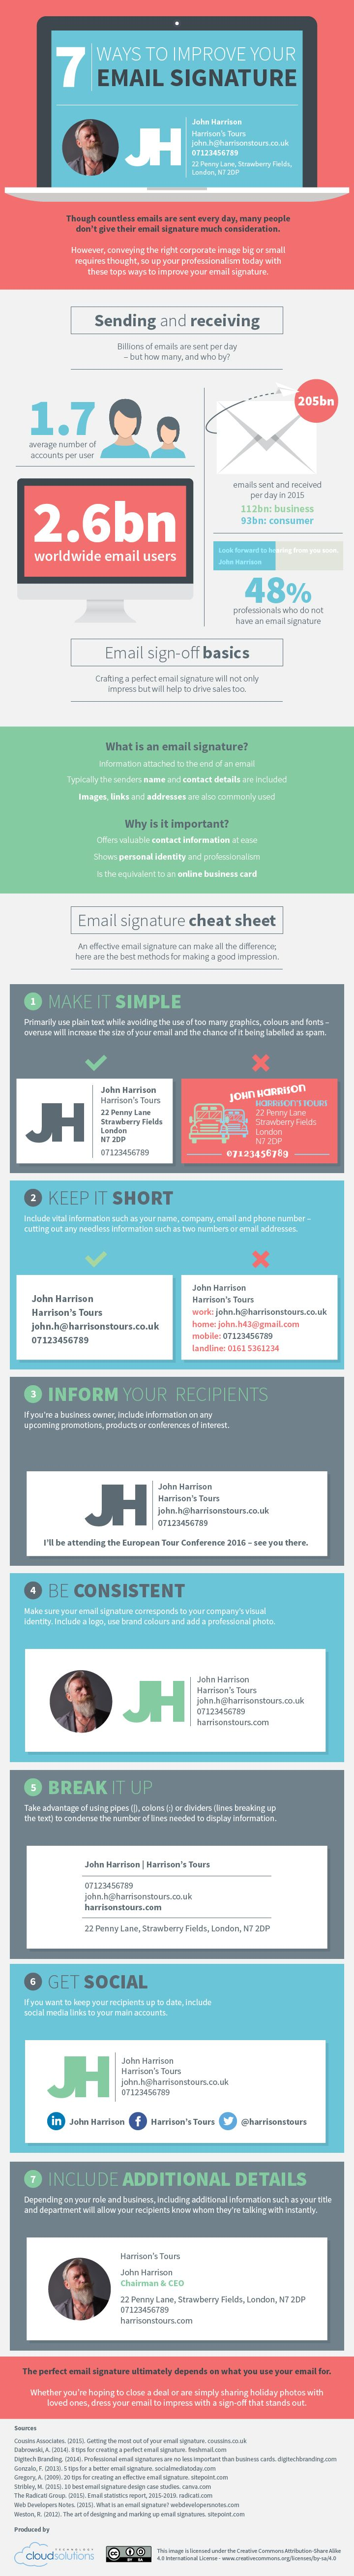 Best 25+ Creative email signatures ideas on Pinterest